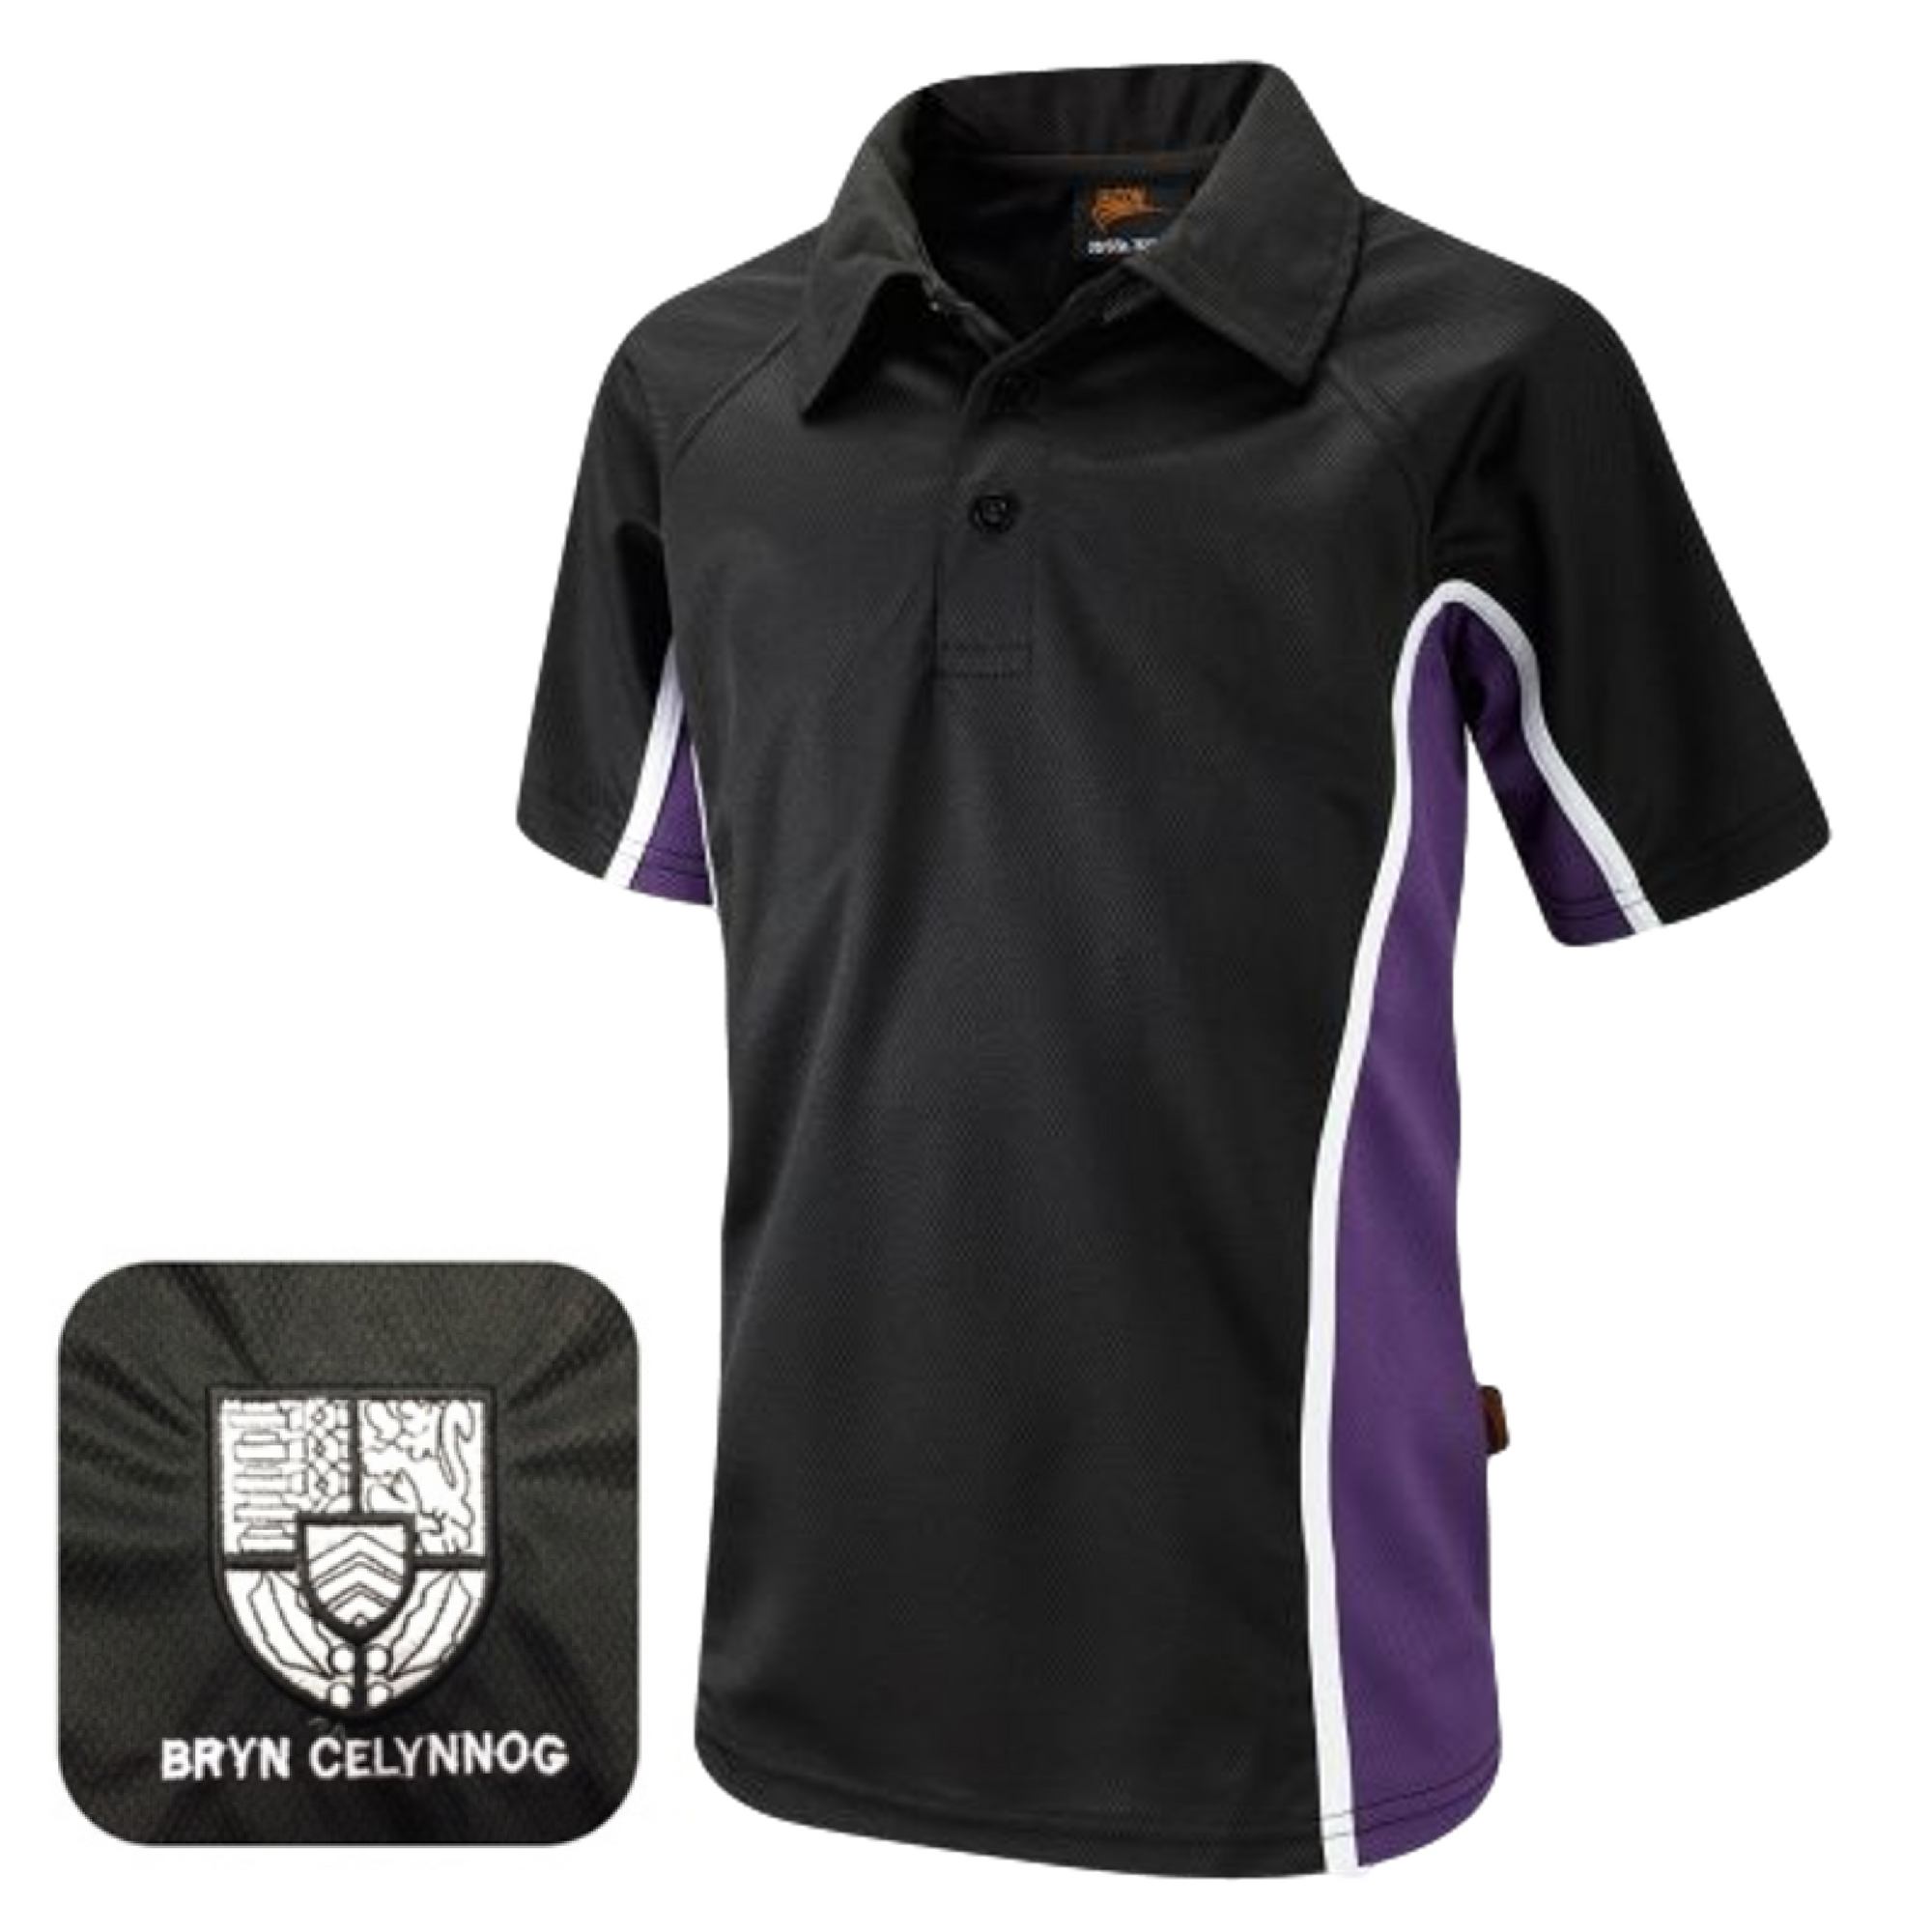 Bryn Celynog Comprehensive *GCSE* Boys Sports Polo